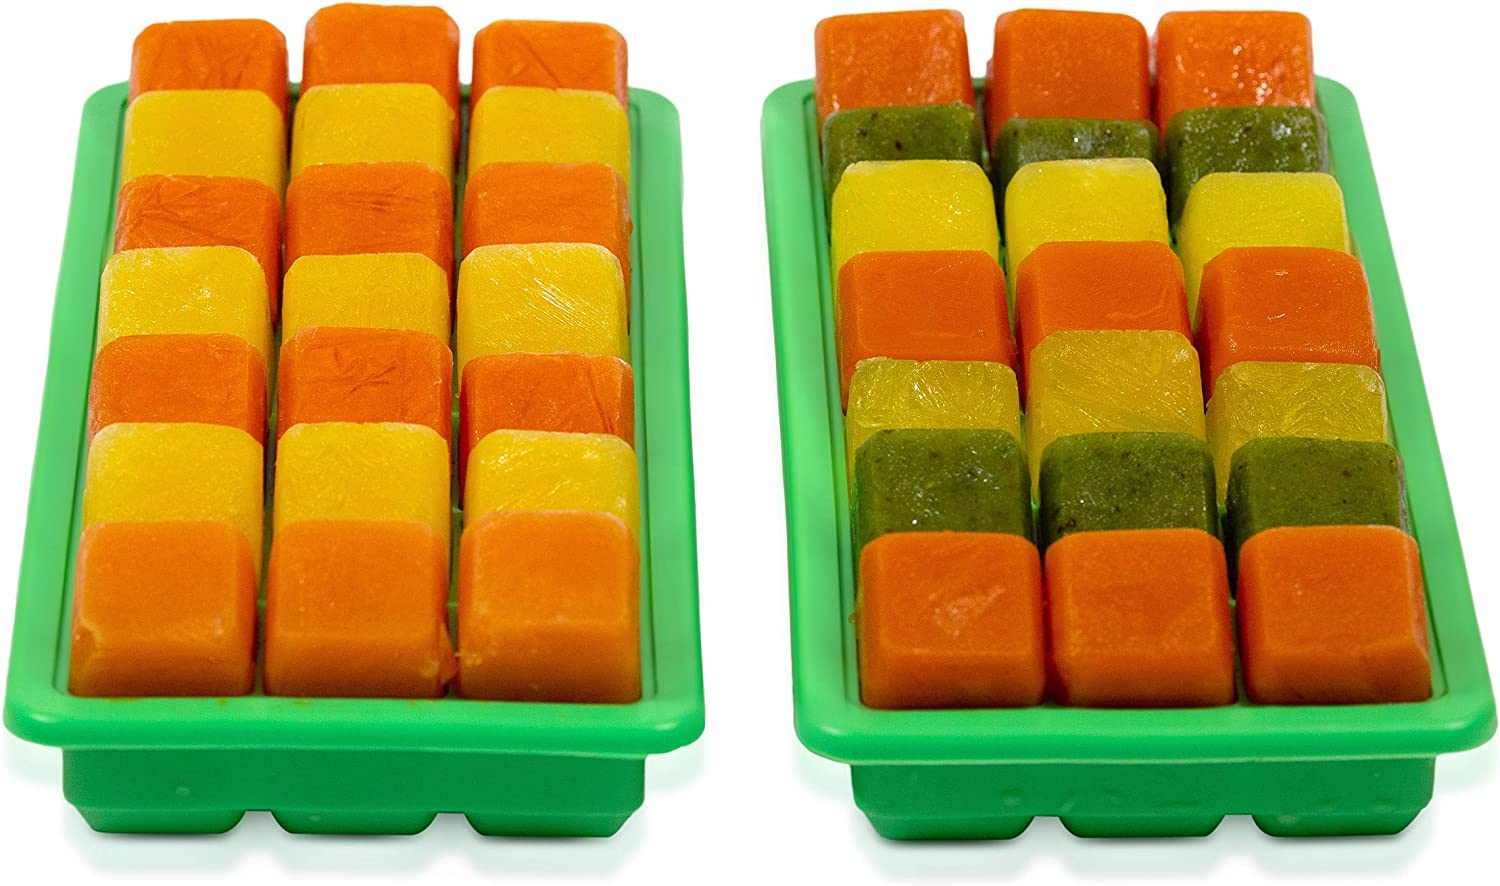 Set of 2 Silicone Ice Cube Trays With Lids, Makes 21 Ice Cube Each, Pair of Silicone Molds For Making Ice Cubes, Food Grade Silicone, BPA Free Ice Trays - Color Green